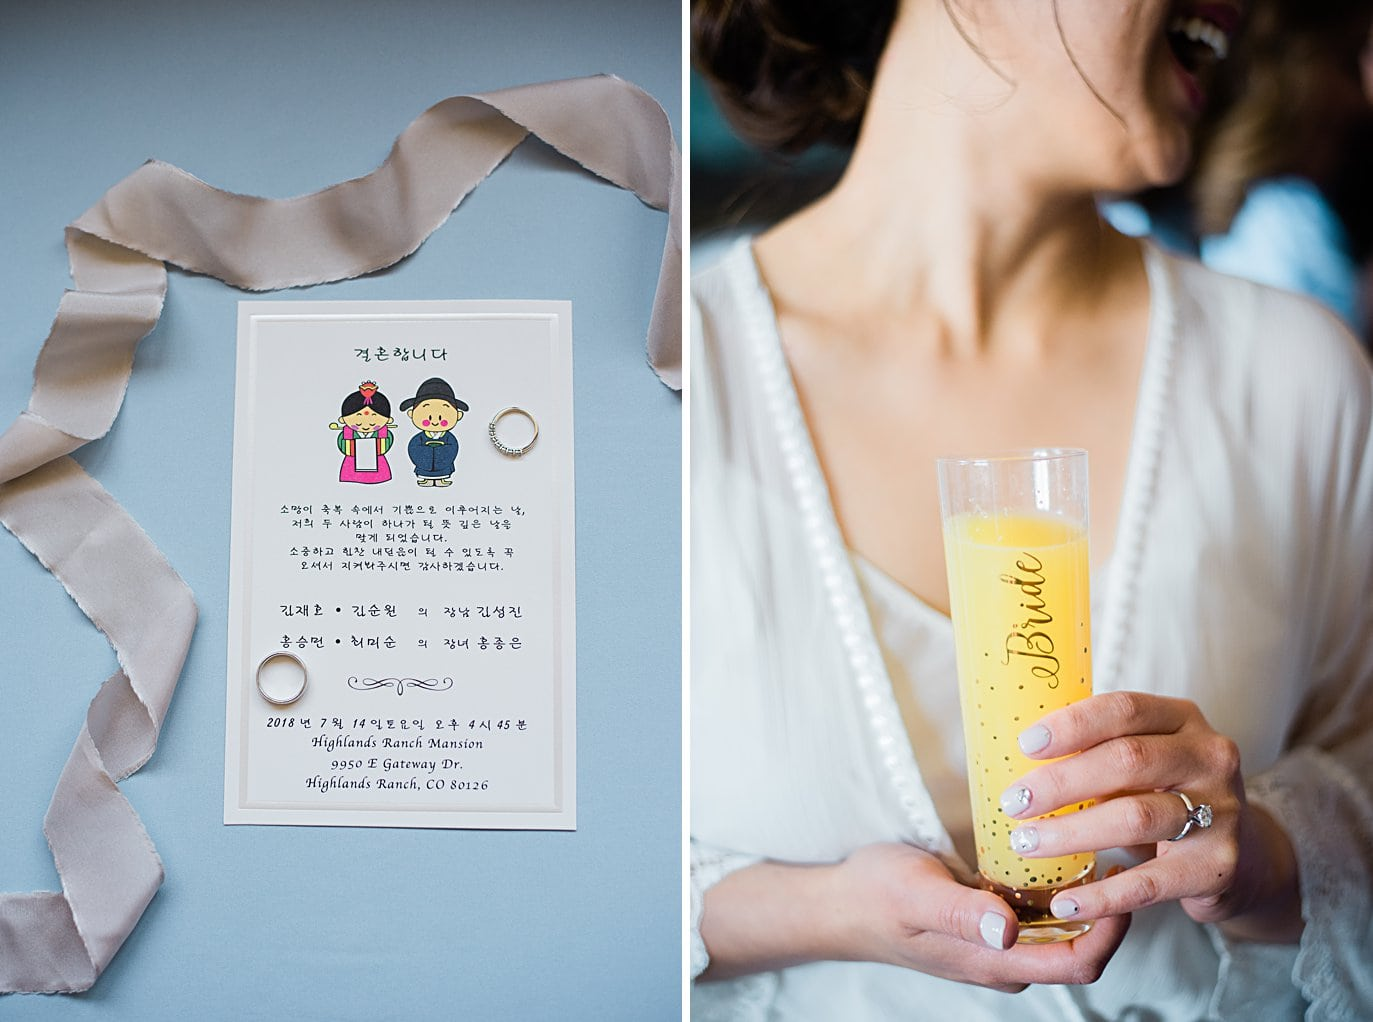 bride holding mimosa glass and korean wedding invitation at Highlands Ranch Mansion Wedding by Golden wedding photographer Jennie Crate